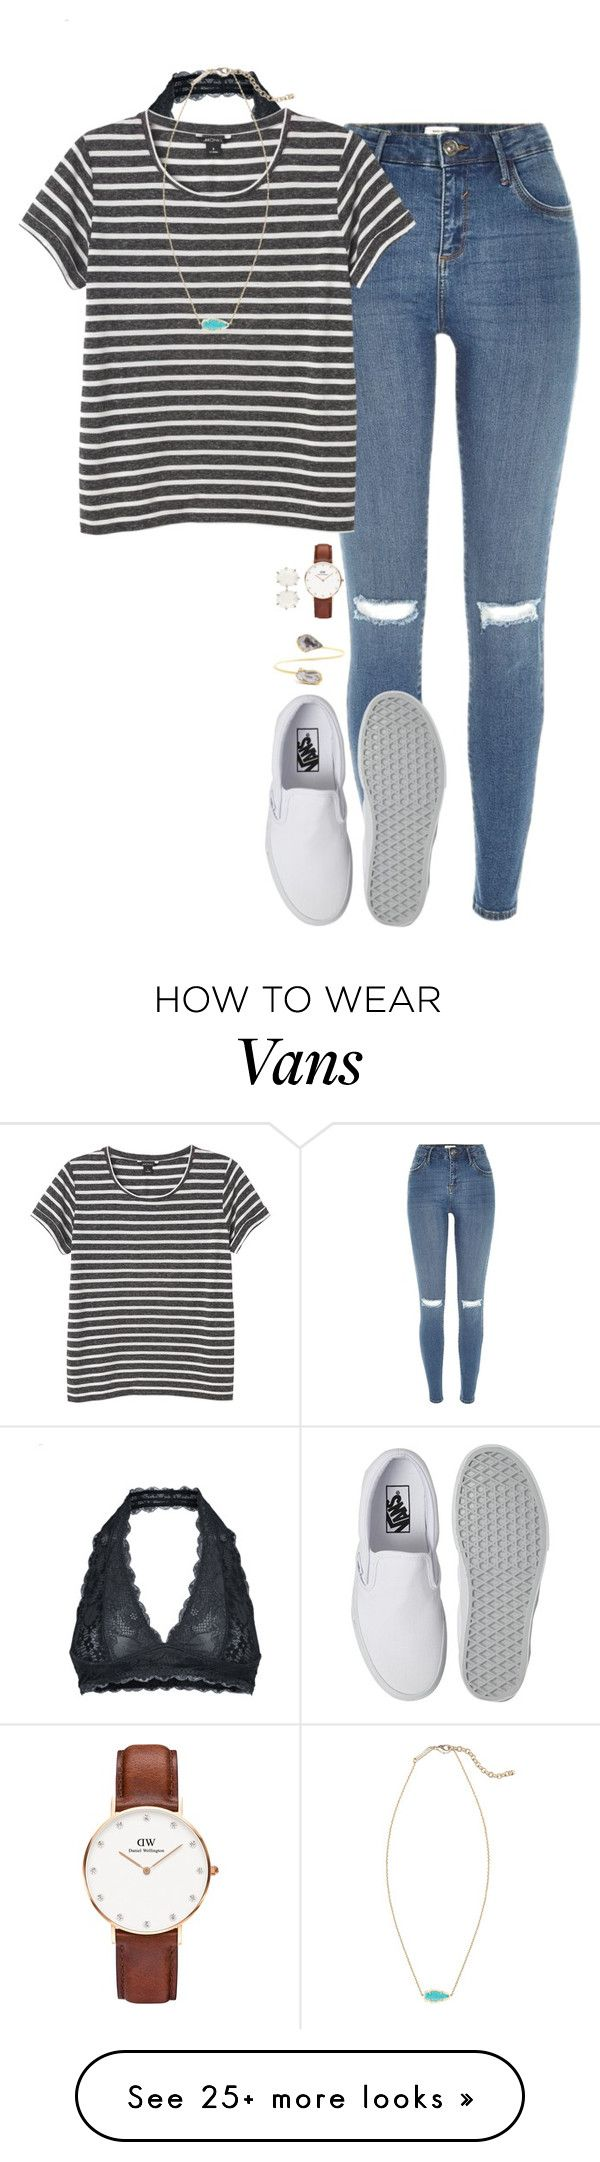 """comment below how you wake up... i'm curious "" by thatprepsterlibby on Polyvore featuring River Island, Free People, Monki, Vans, Sole Society, Kendra Scott, Daniel Wellington, women's clothing, women and female"